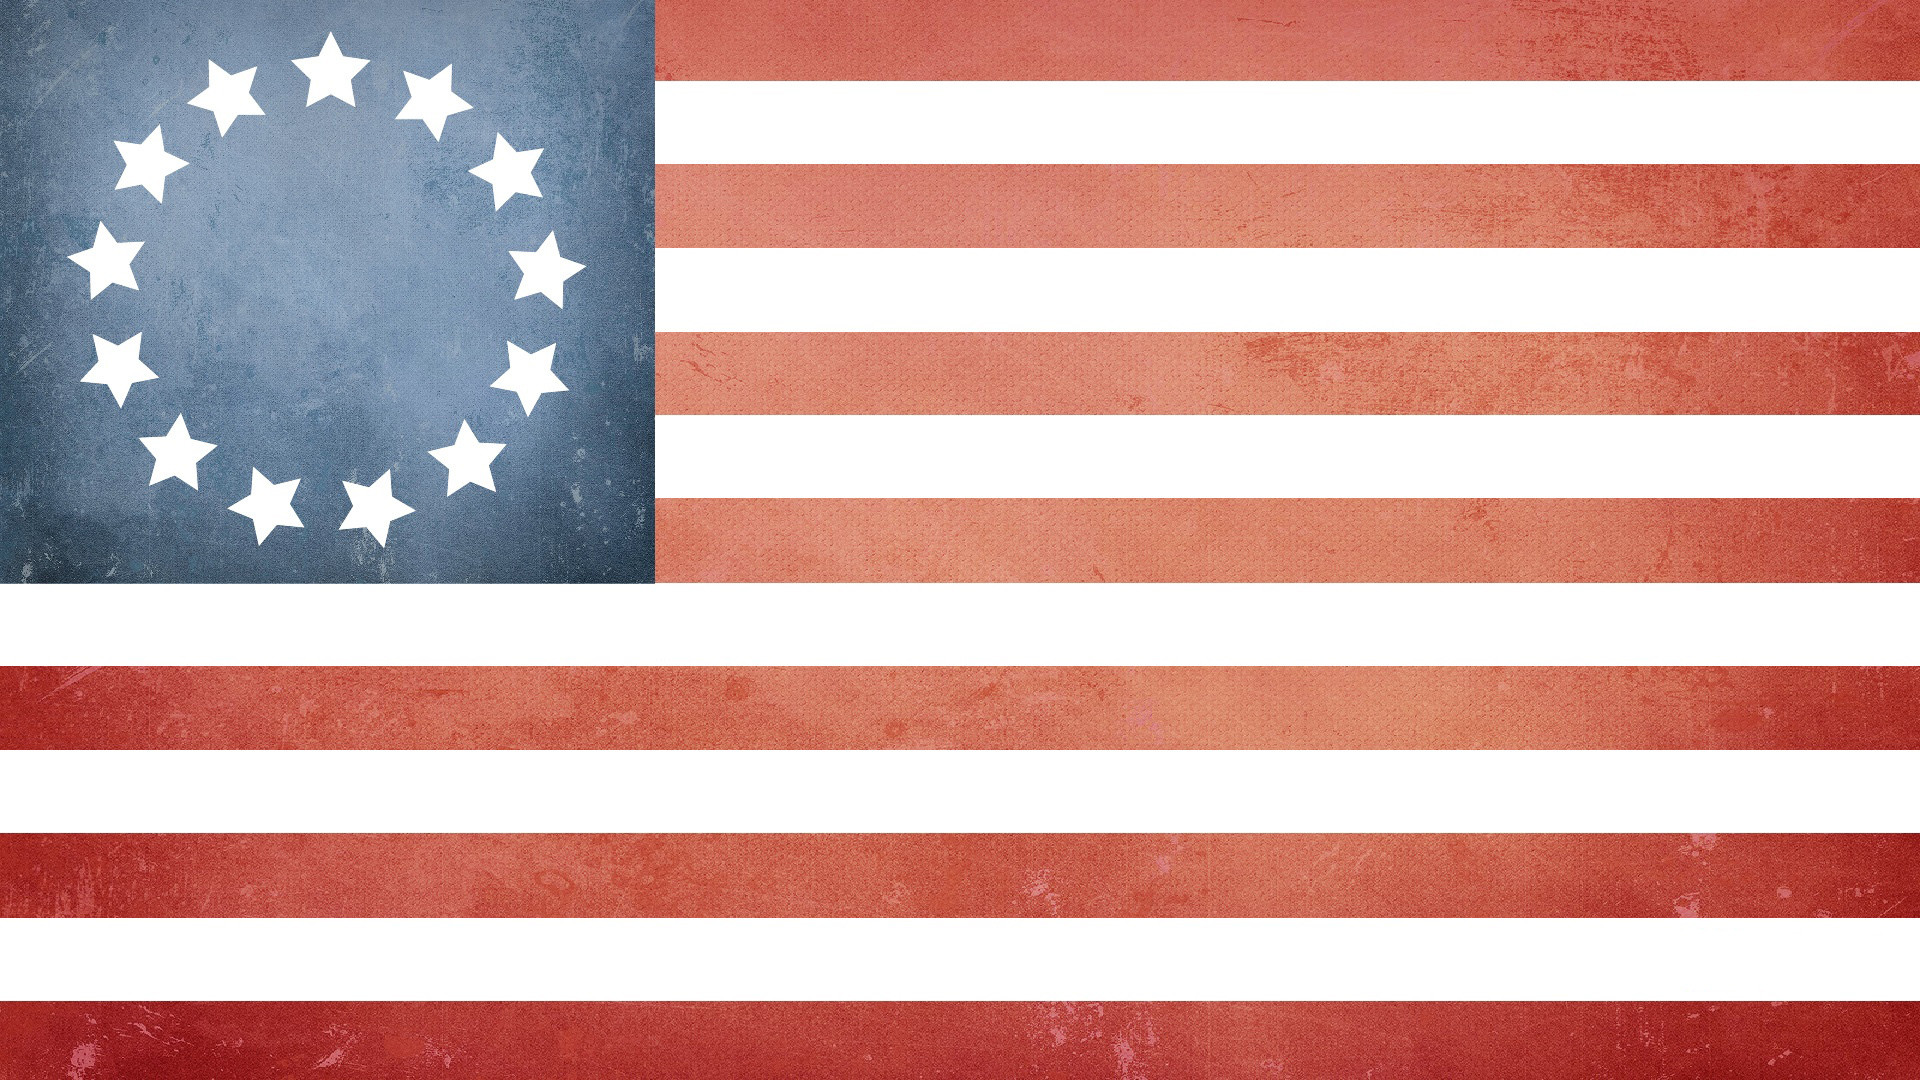 American Hd Wallpaper Widescreen 1920x1080: American Flag Wallpaper 1920x1080 (61+ Images